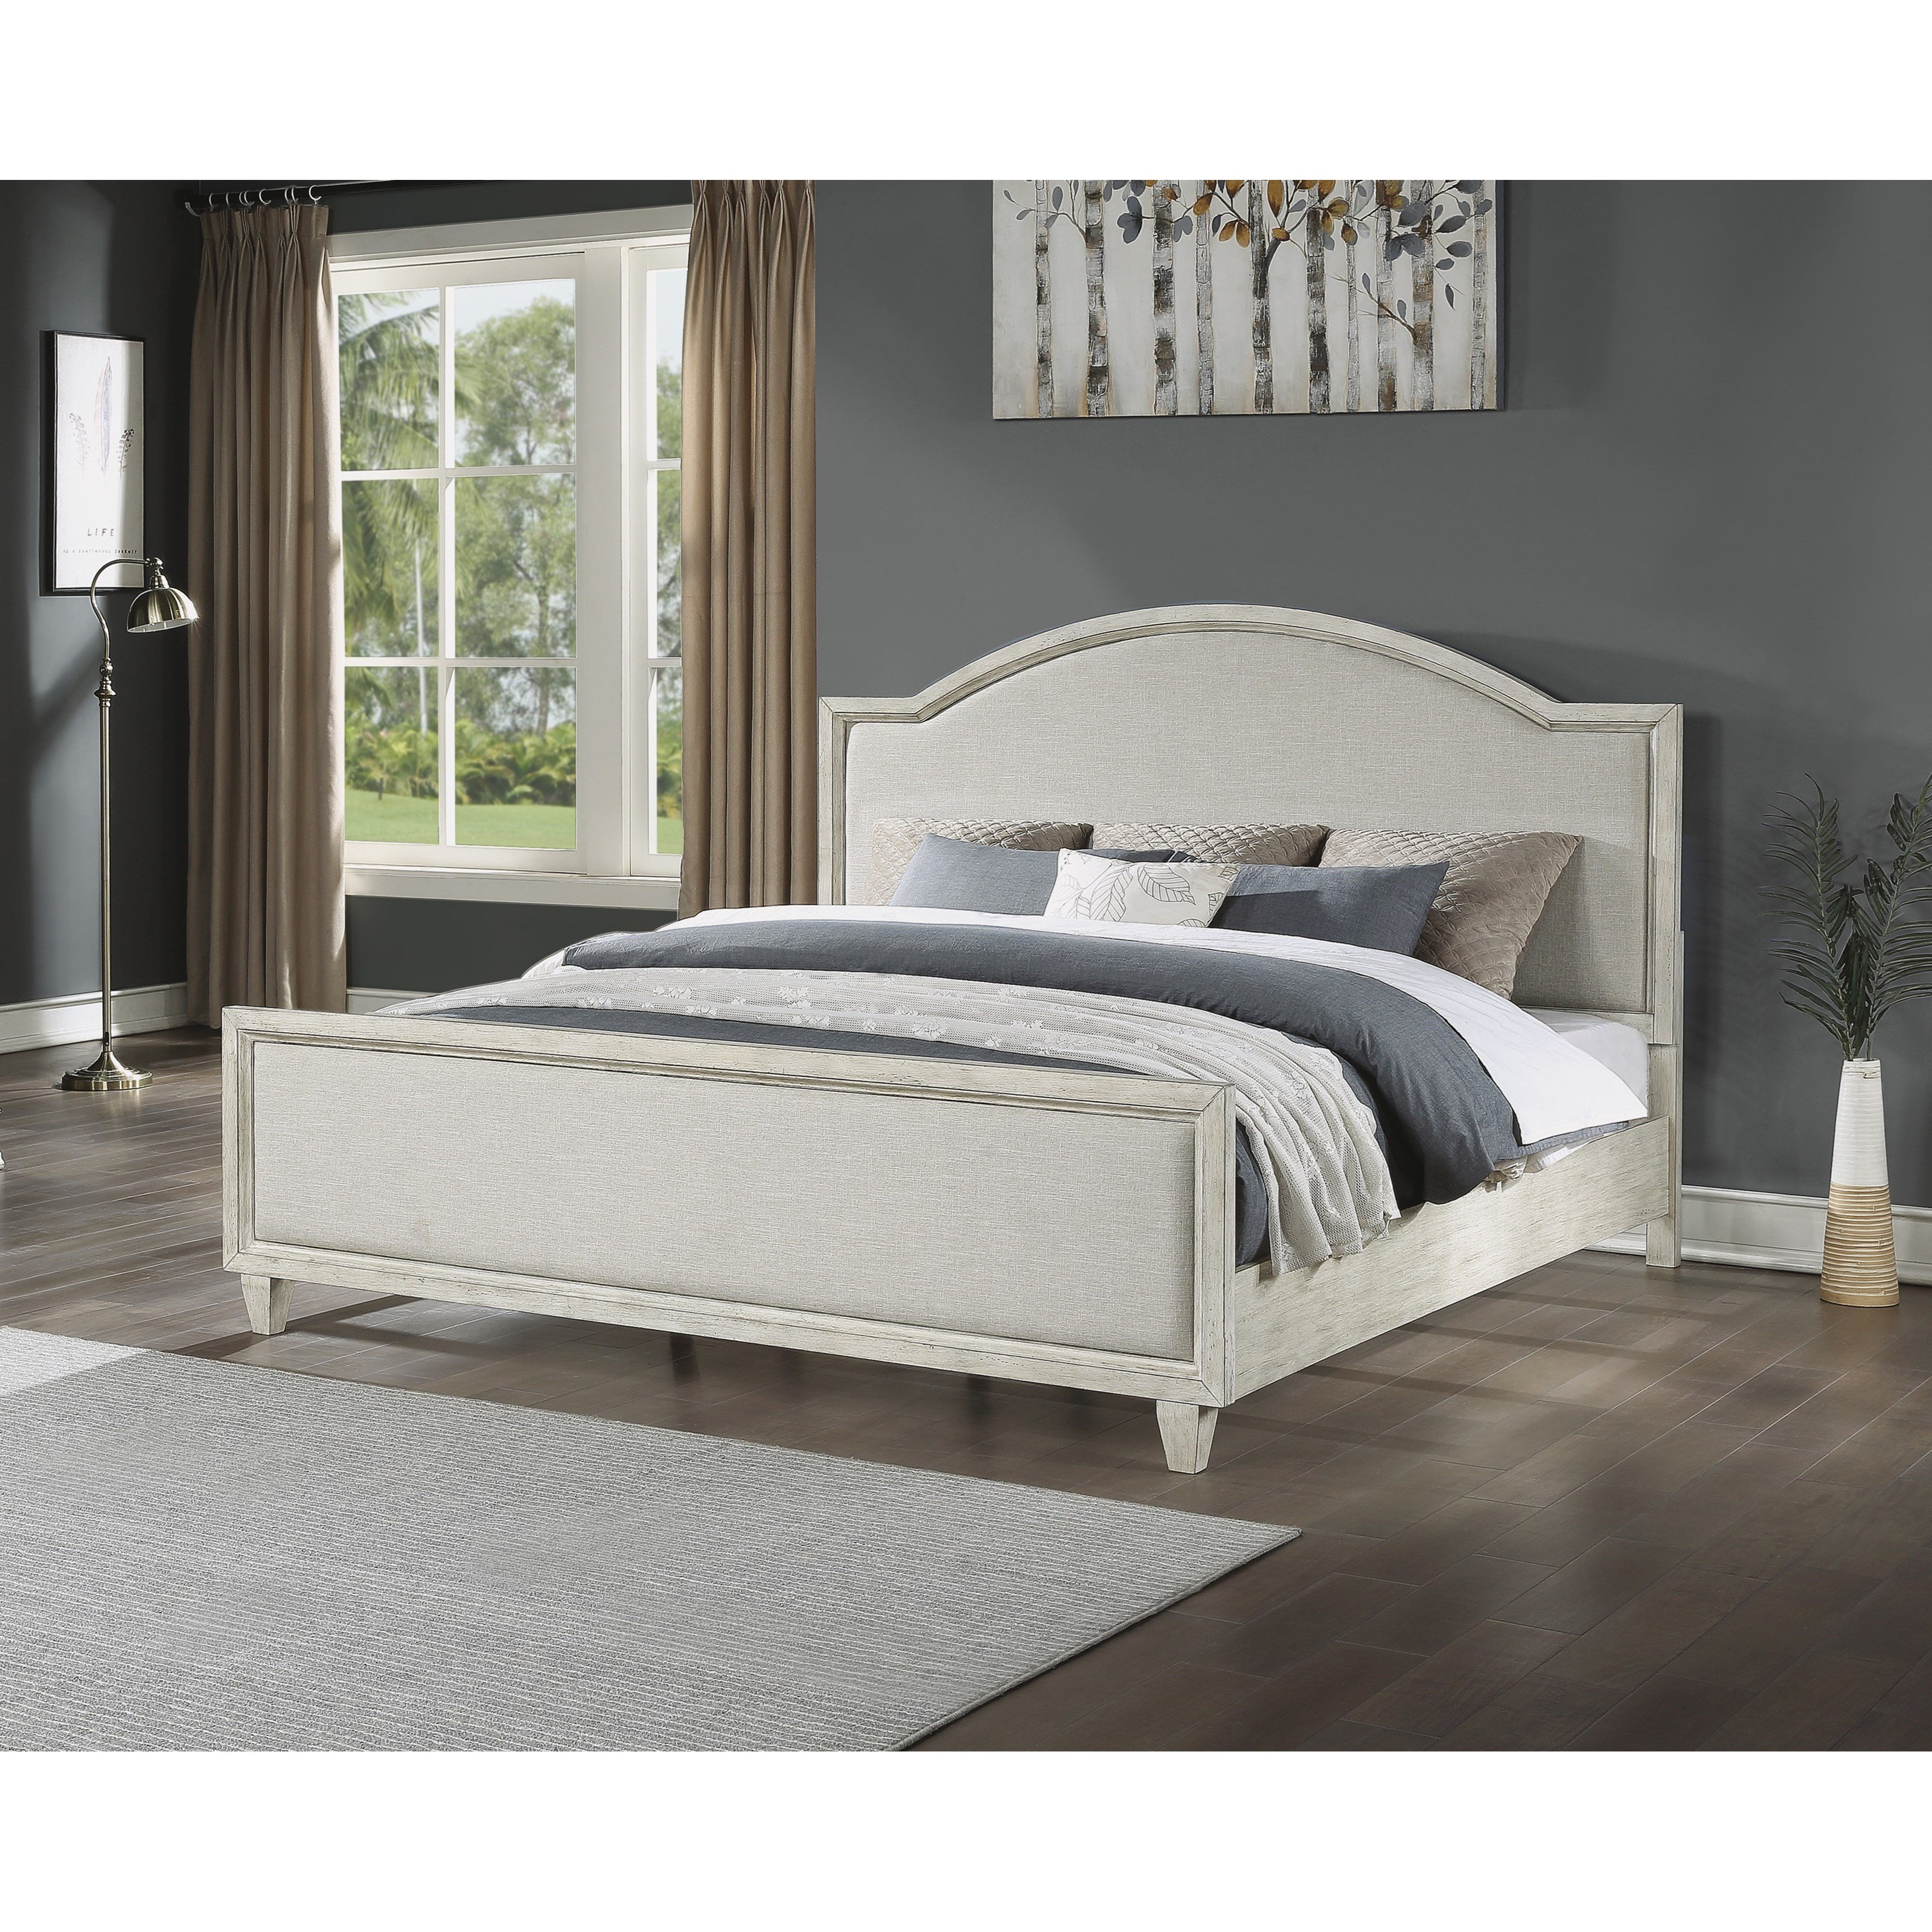 Newport Queen Upholstered Bed by Flexsteel Wynwood Collection at Steger's Furniture